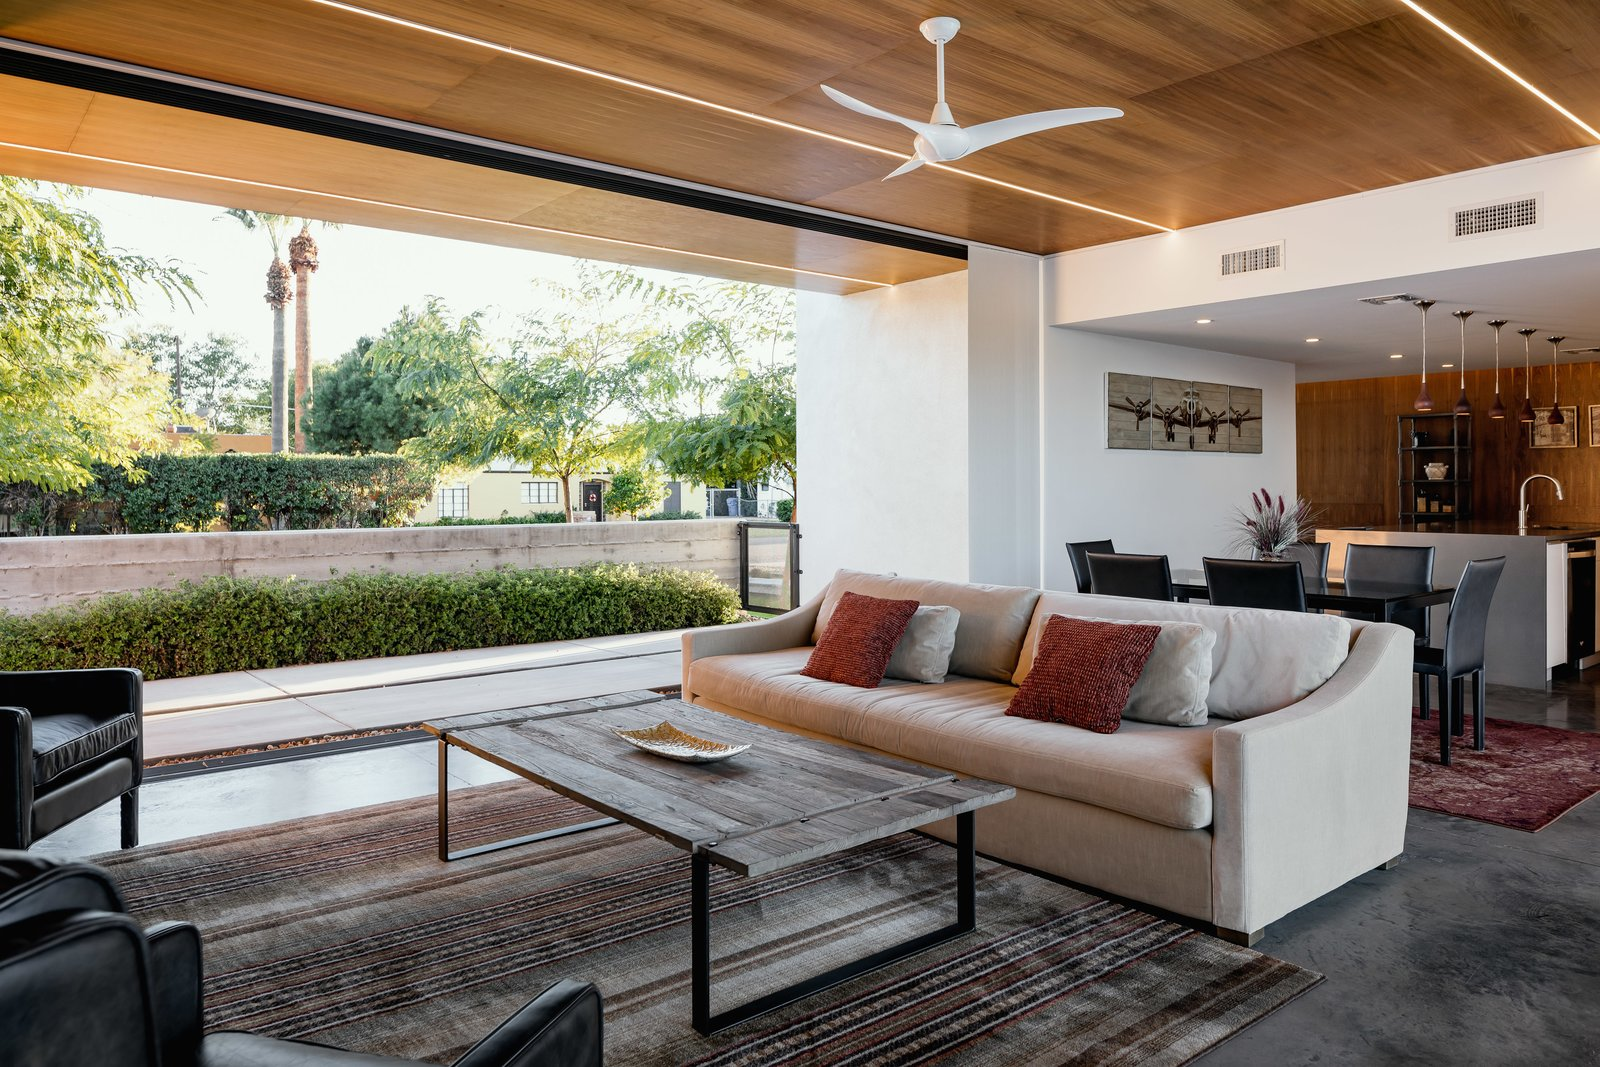 Concrete, Shrubs, Trees, Living, Front Yard, Sofa, Coffee Tables, Ceiling, and Concrete The walnut clad ceiling extends over the kitchen to the entry  Best Living Concrete Photos